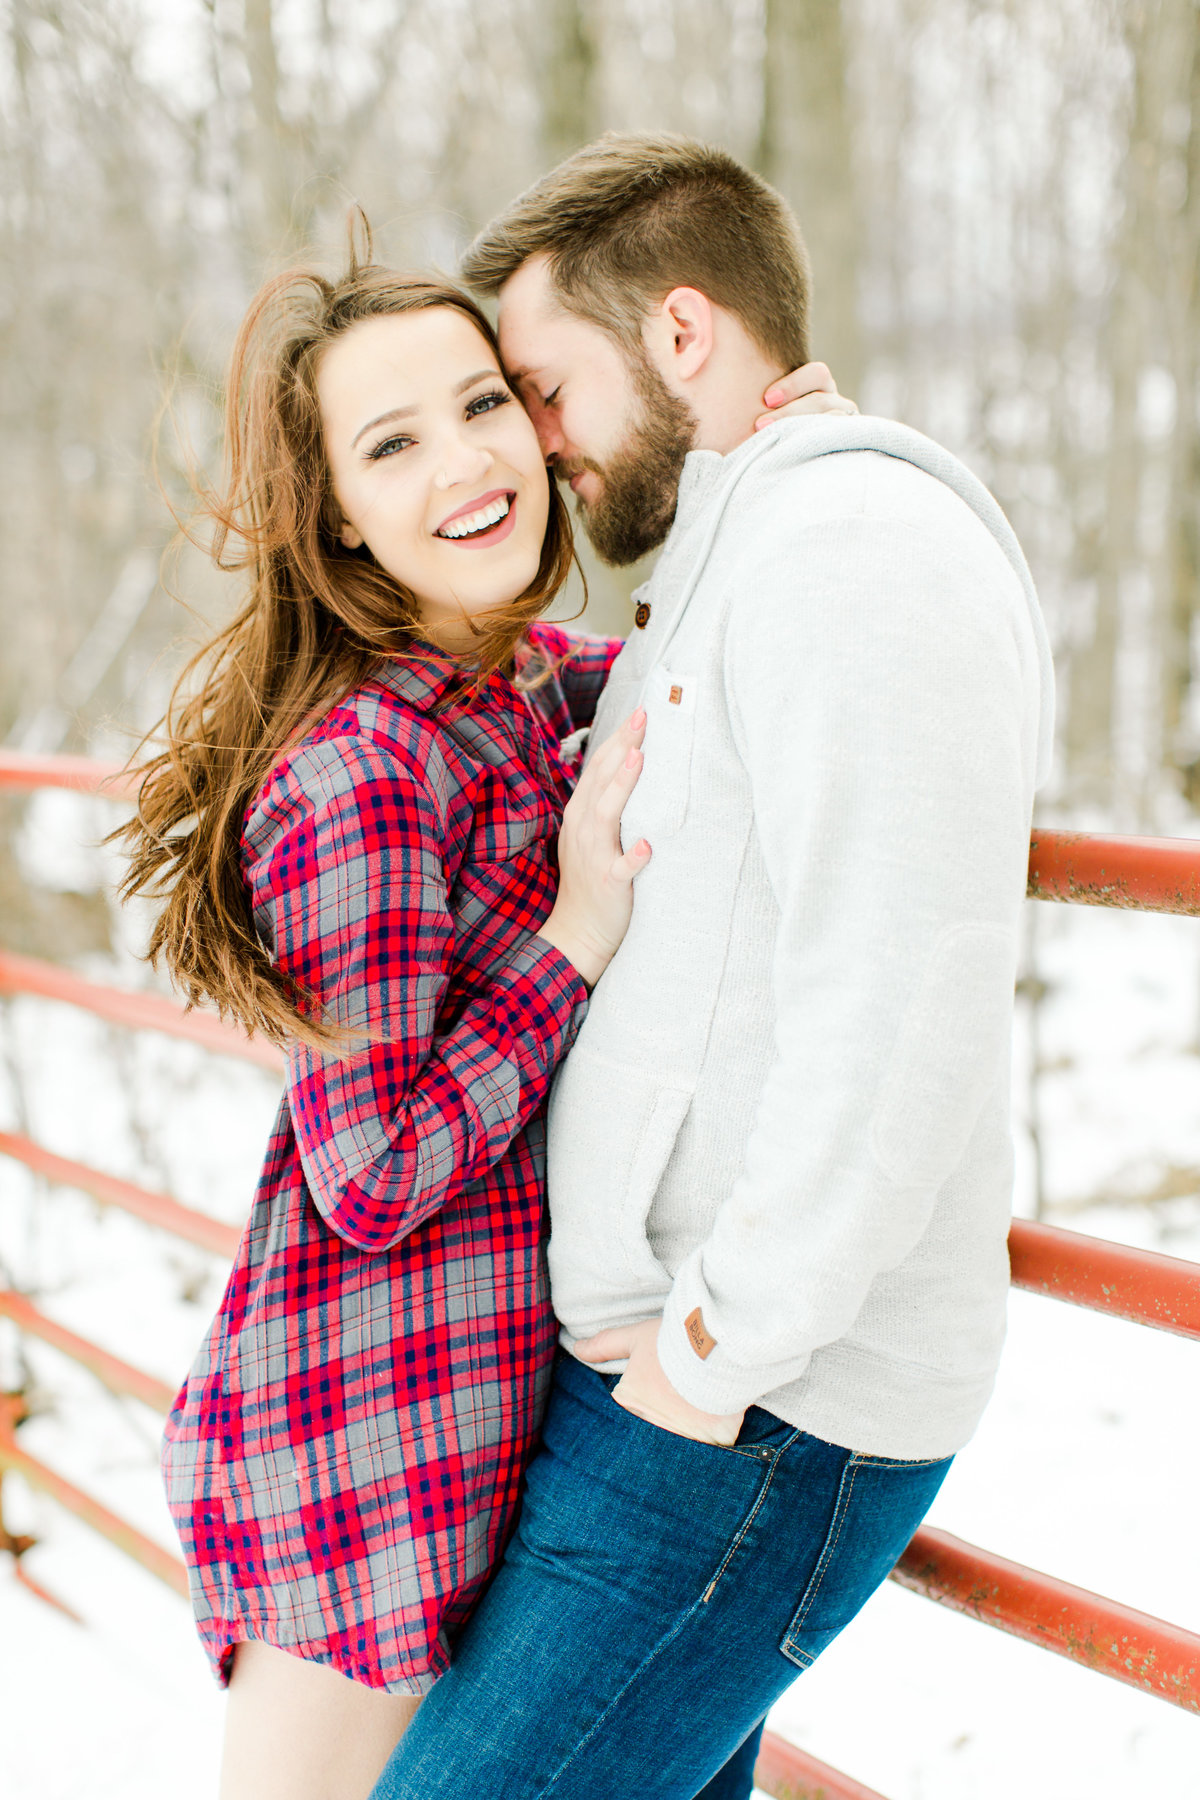 Winter Snowy Engagement Session in The Woods-30